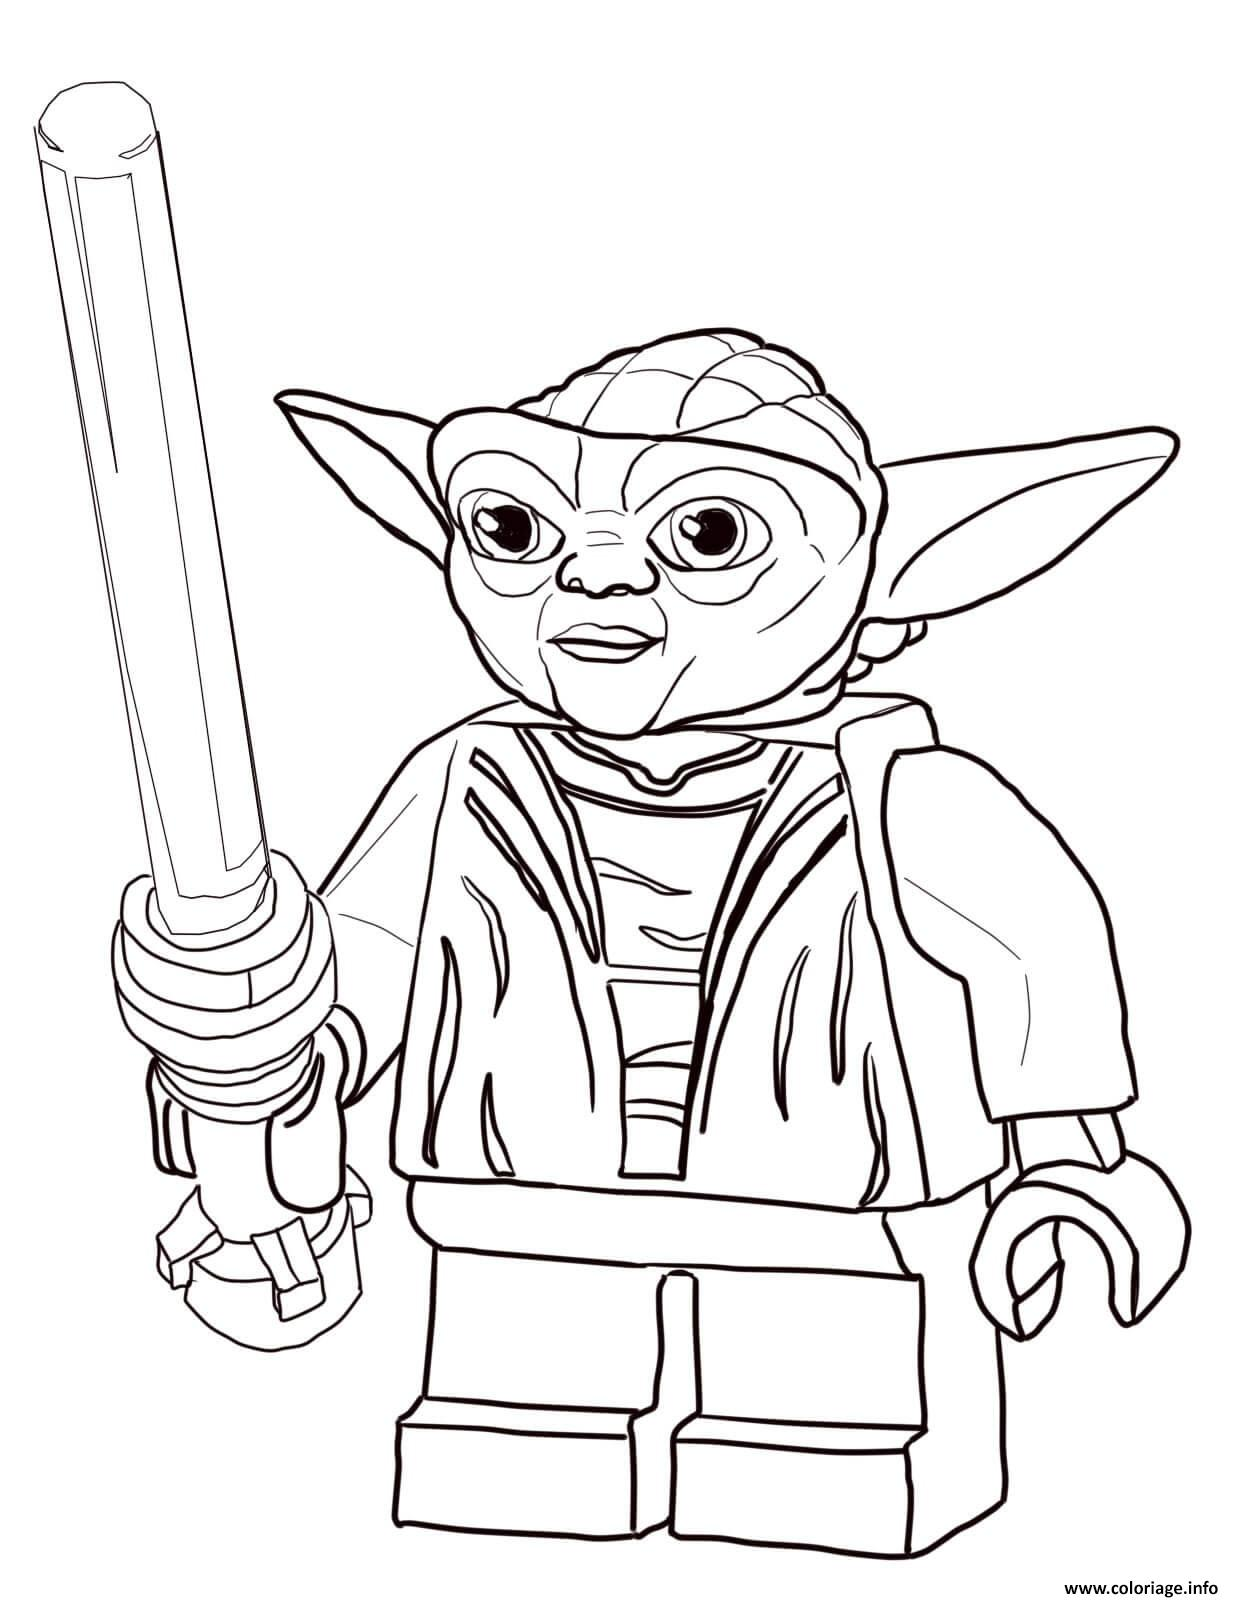 Coloriage star wars lego dessin - Coloriage magique star wars ...